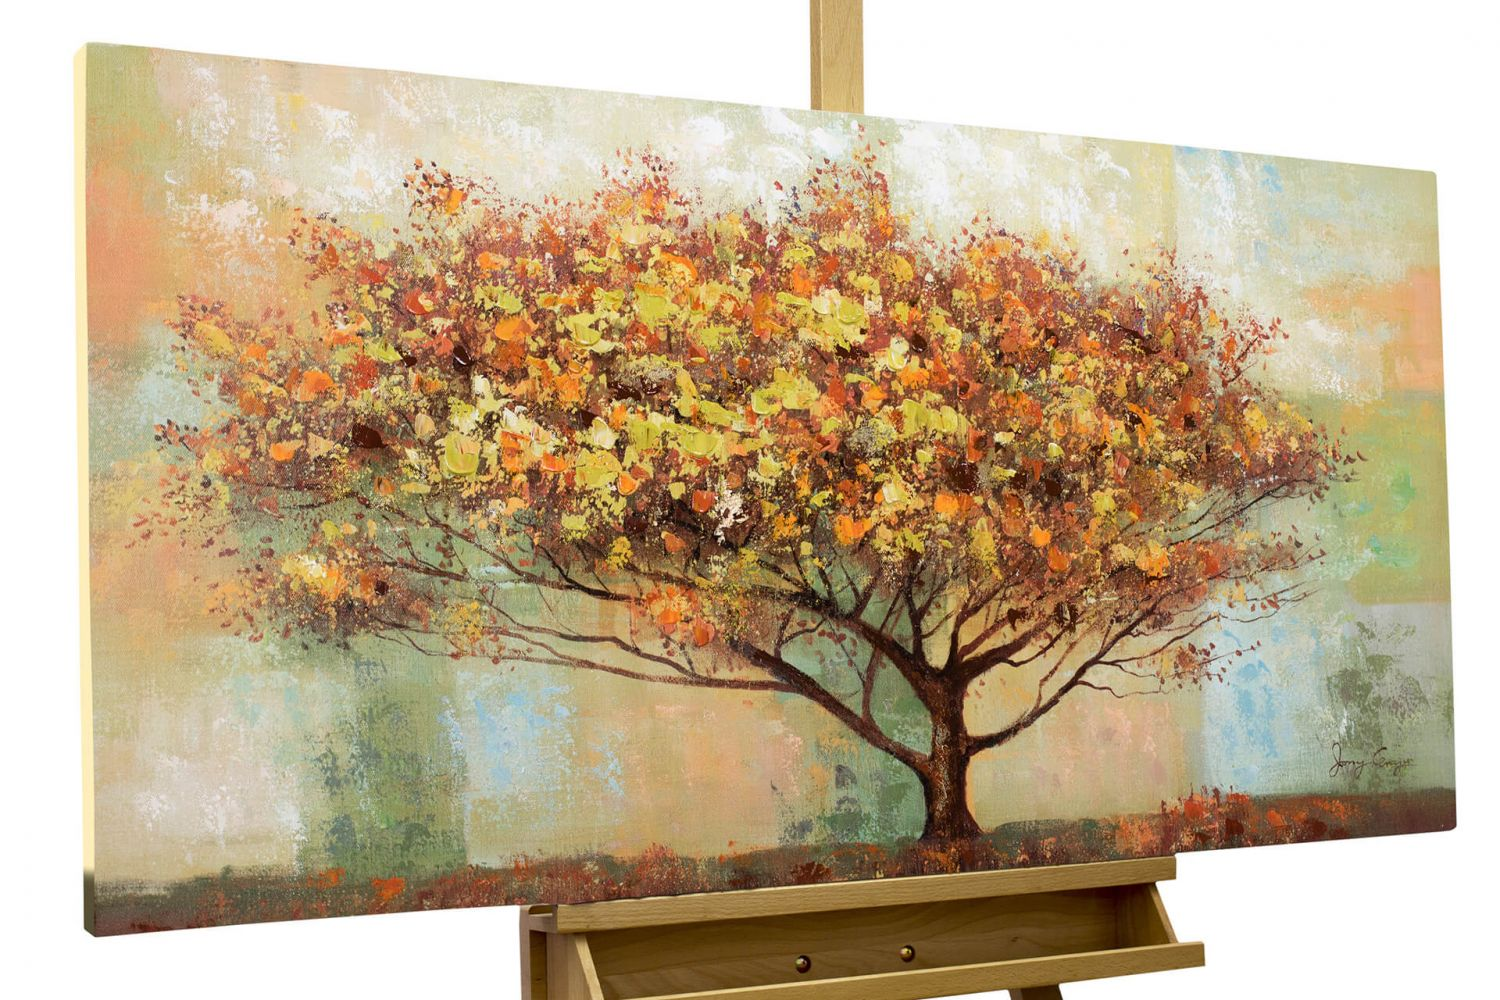 acryl gem lde 39 herbstbaum baum herbst 39 handgemalt leinwand bilder 120x60cm ebay. Black Bedroom Furniture Sets. Home Design Ideas